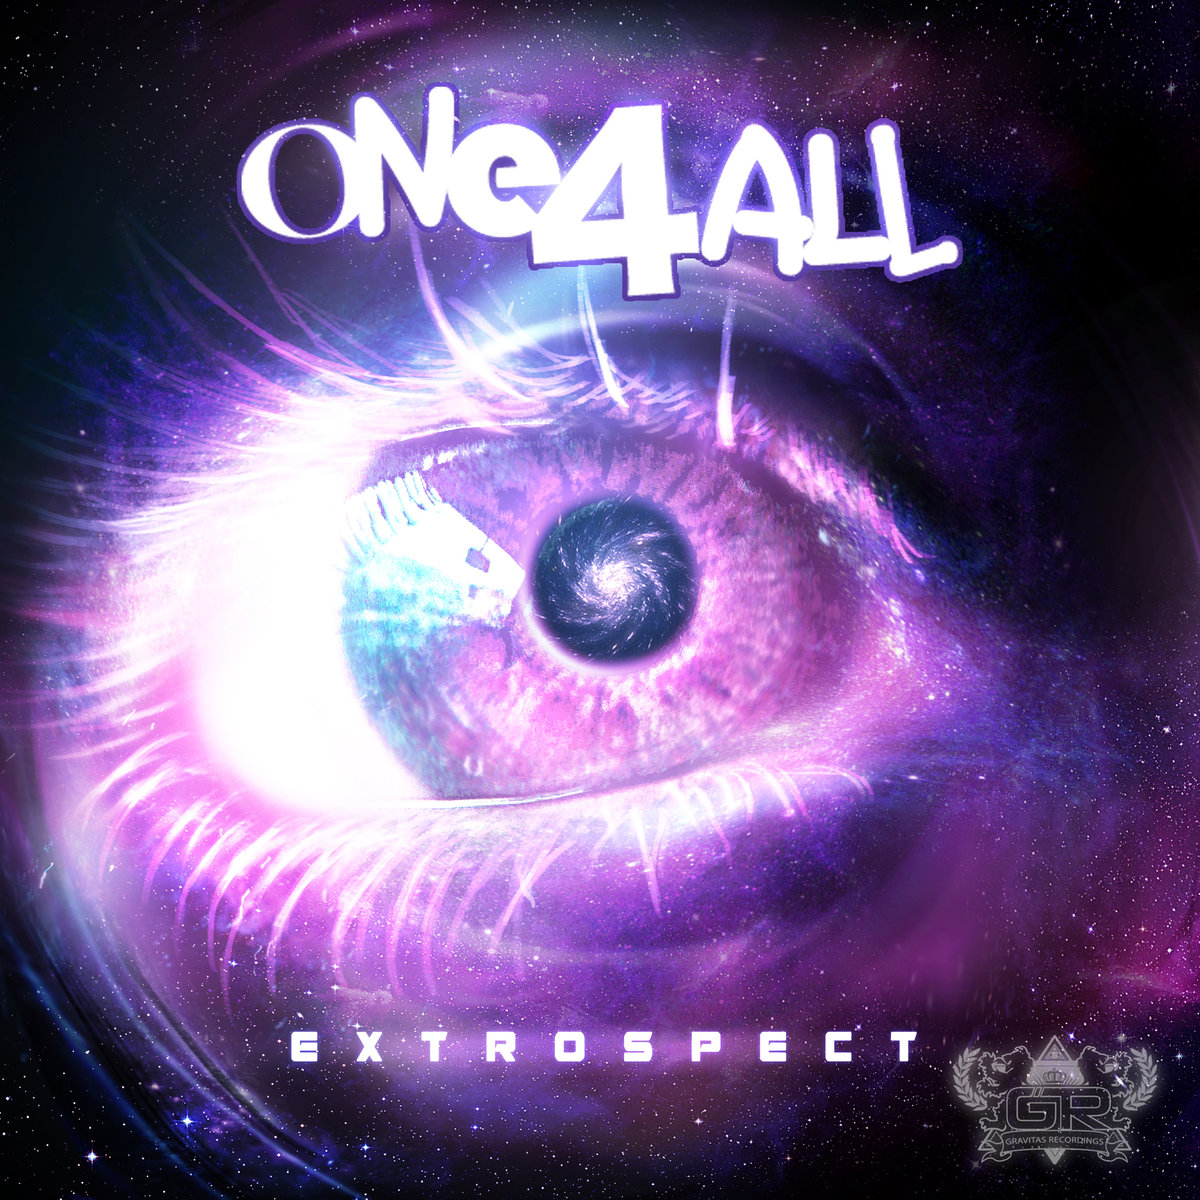 ONE4ALL - Extrospect (artwork)